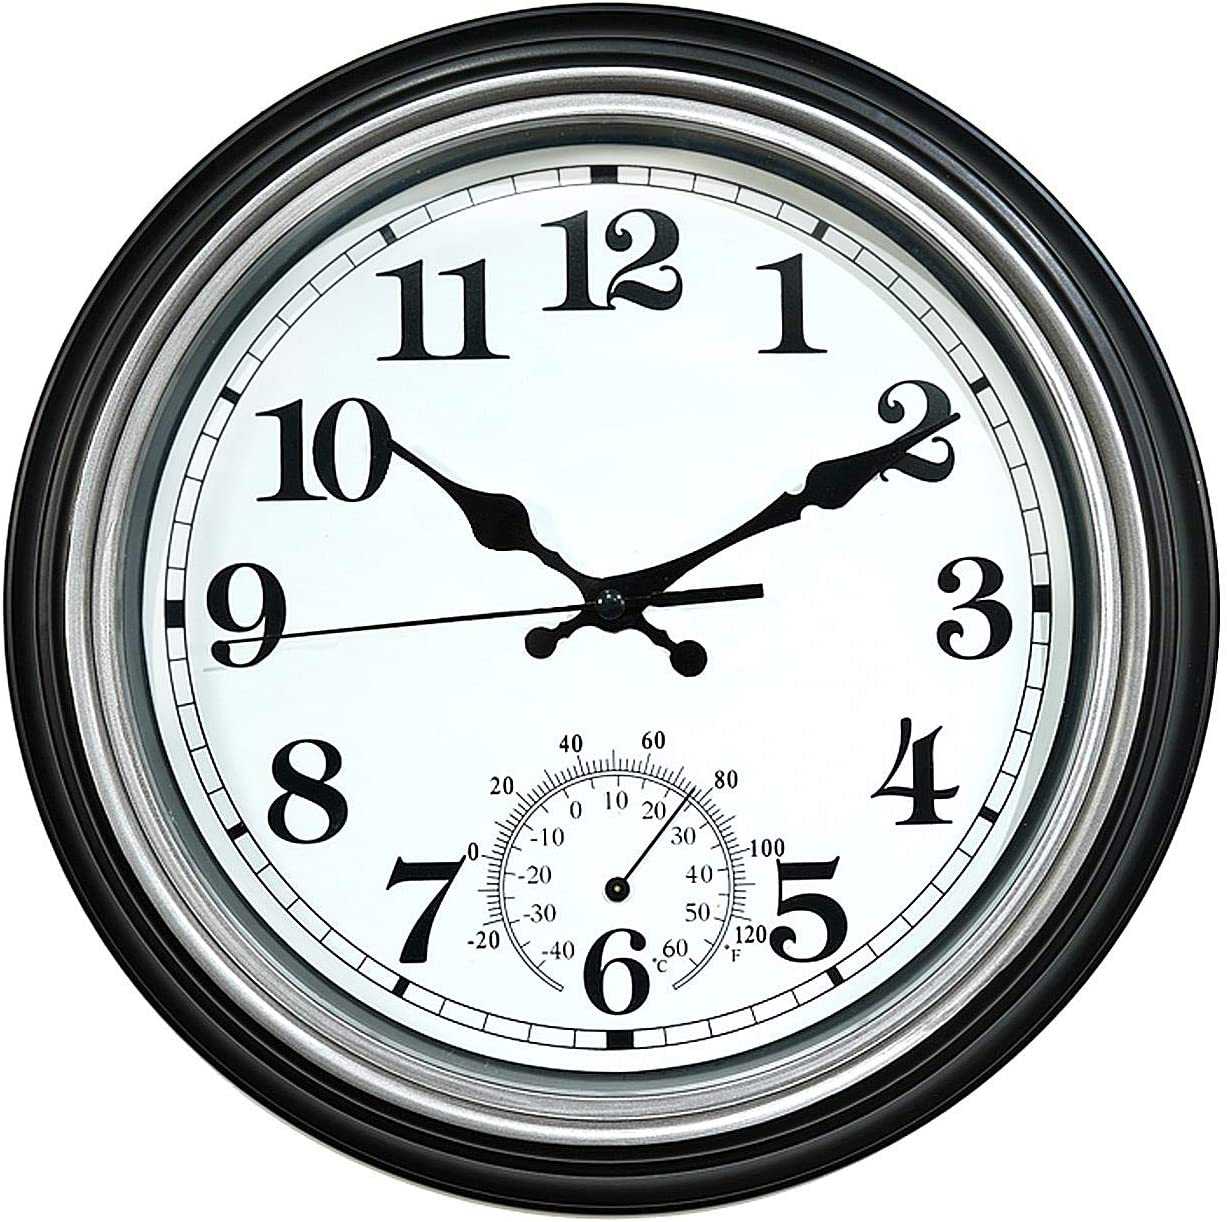 12-Inch Indoor/Outdoor Retro Silent Non-Ticking Waterproof Wall Clock with Thermometer,Battery Operated Quality Quartz Round Clock Wall Decorative for Patio/Home